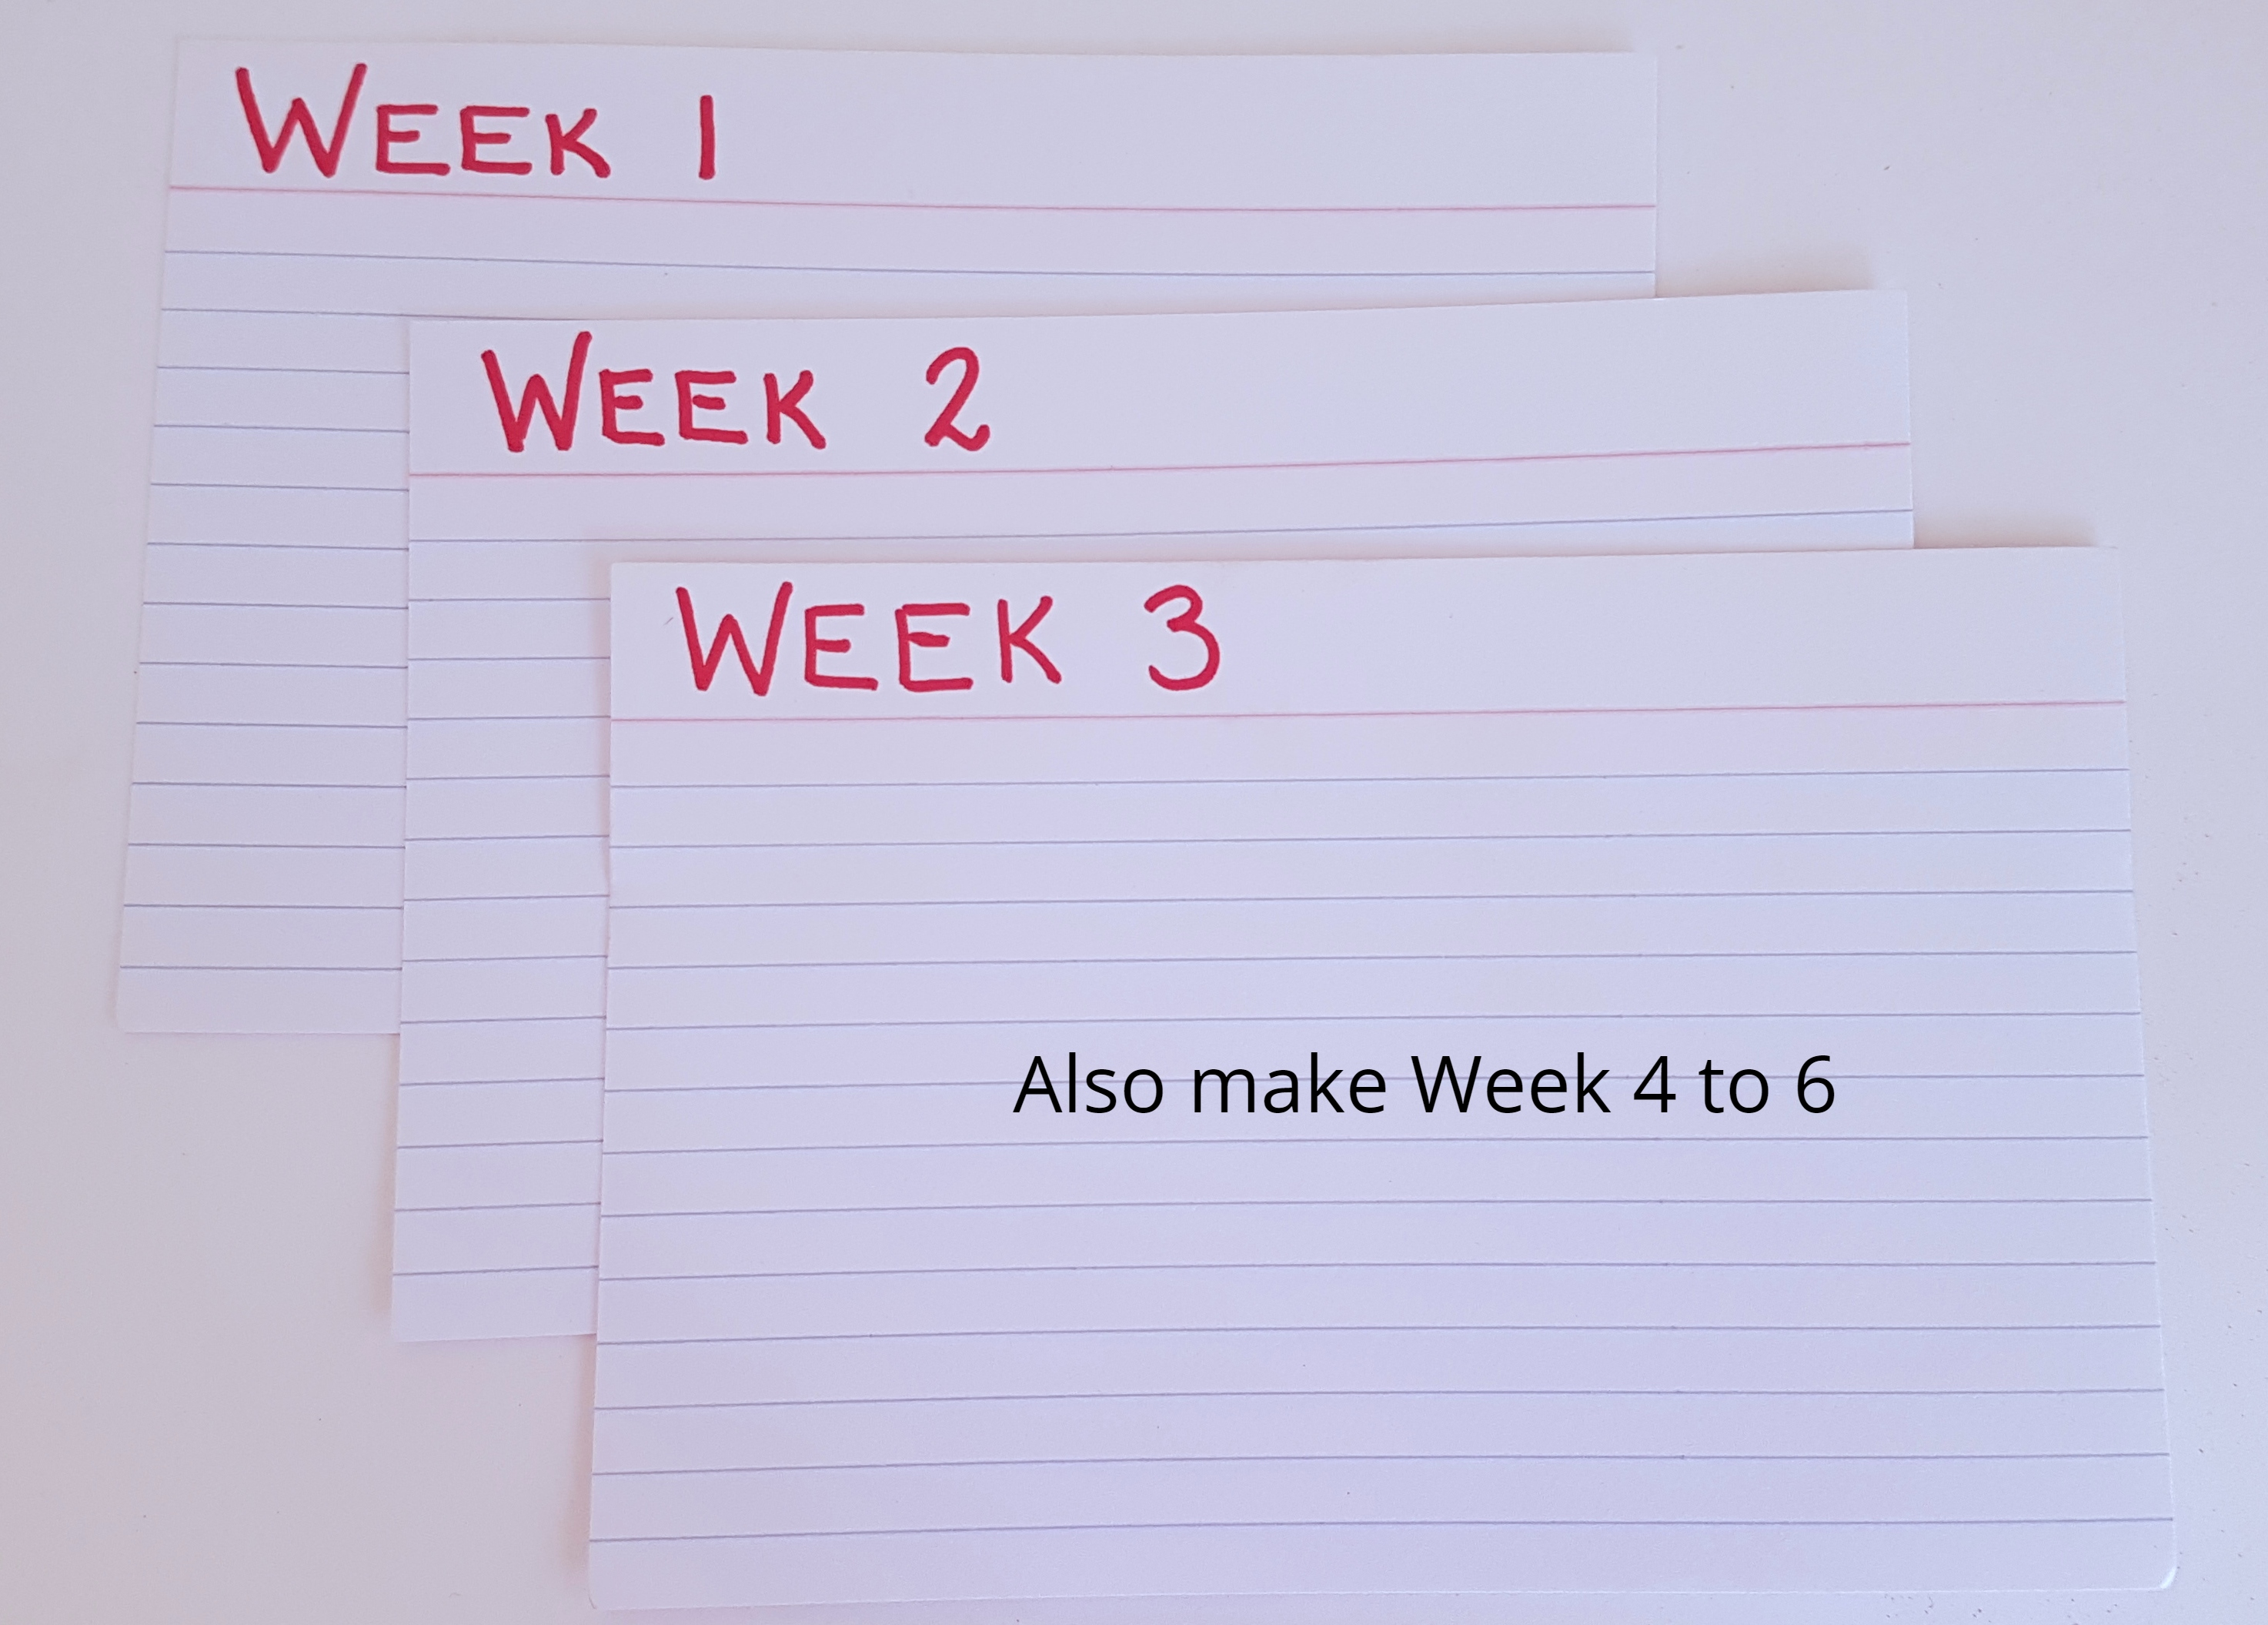 The weekly tabs for this index card system